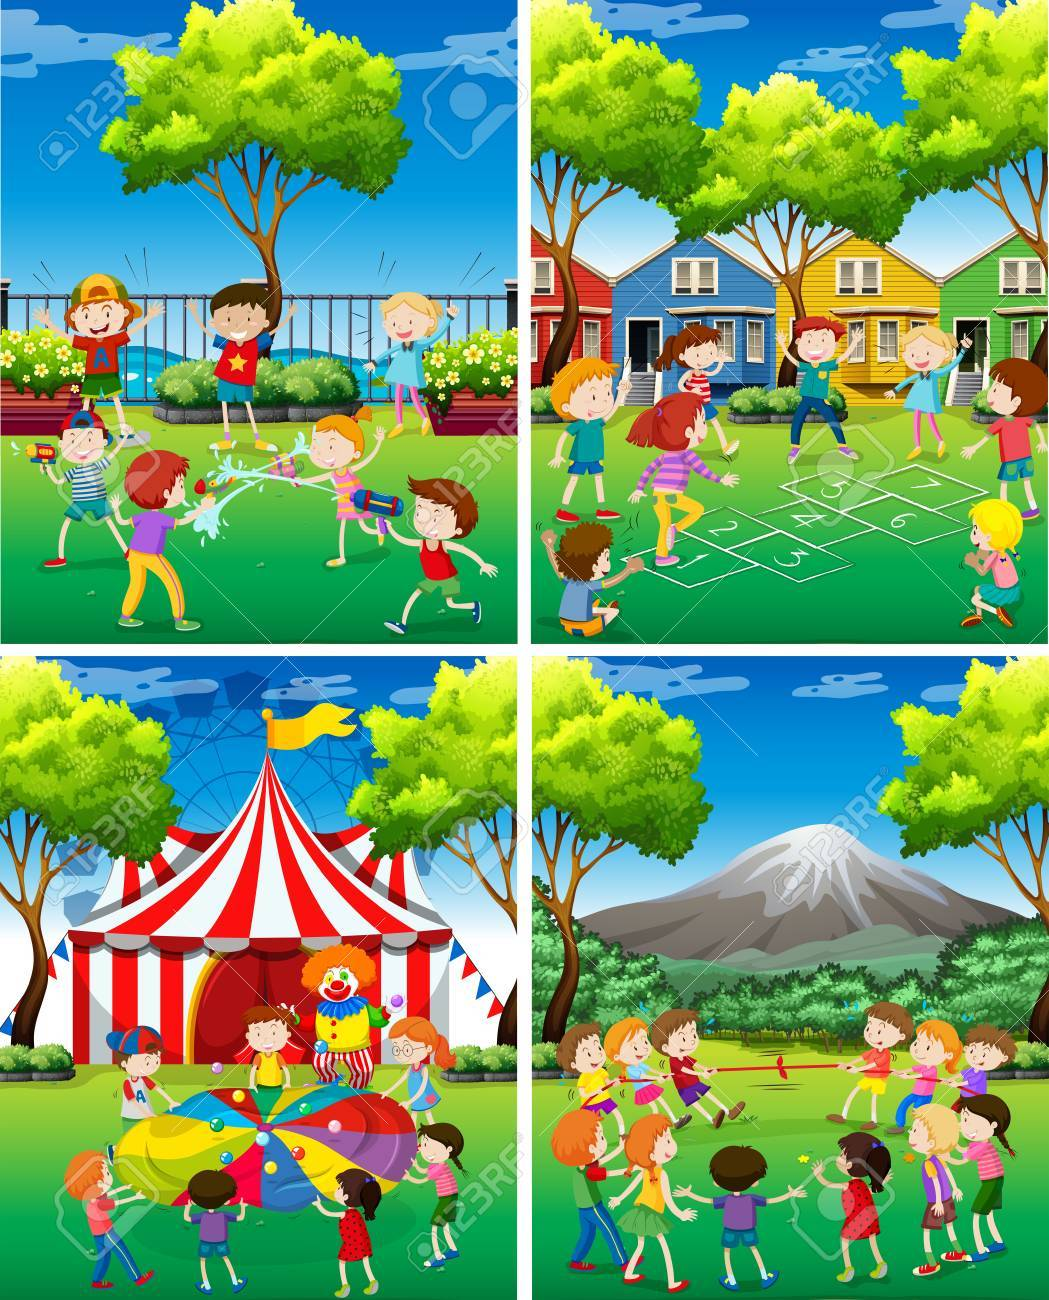 Four scene of children playing in the park illustration.